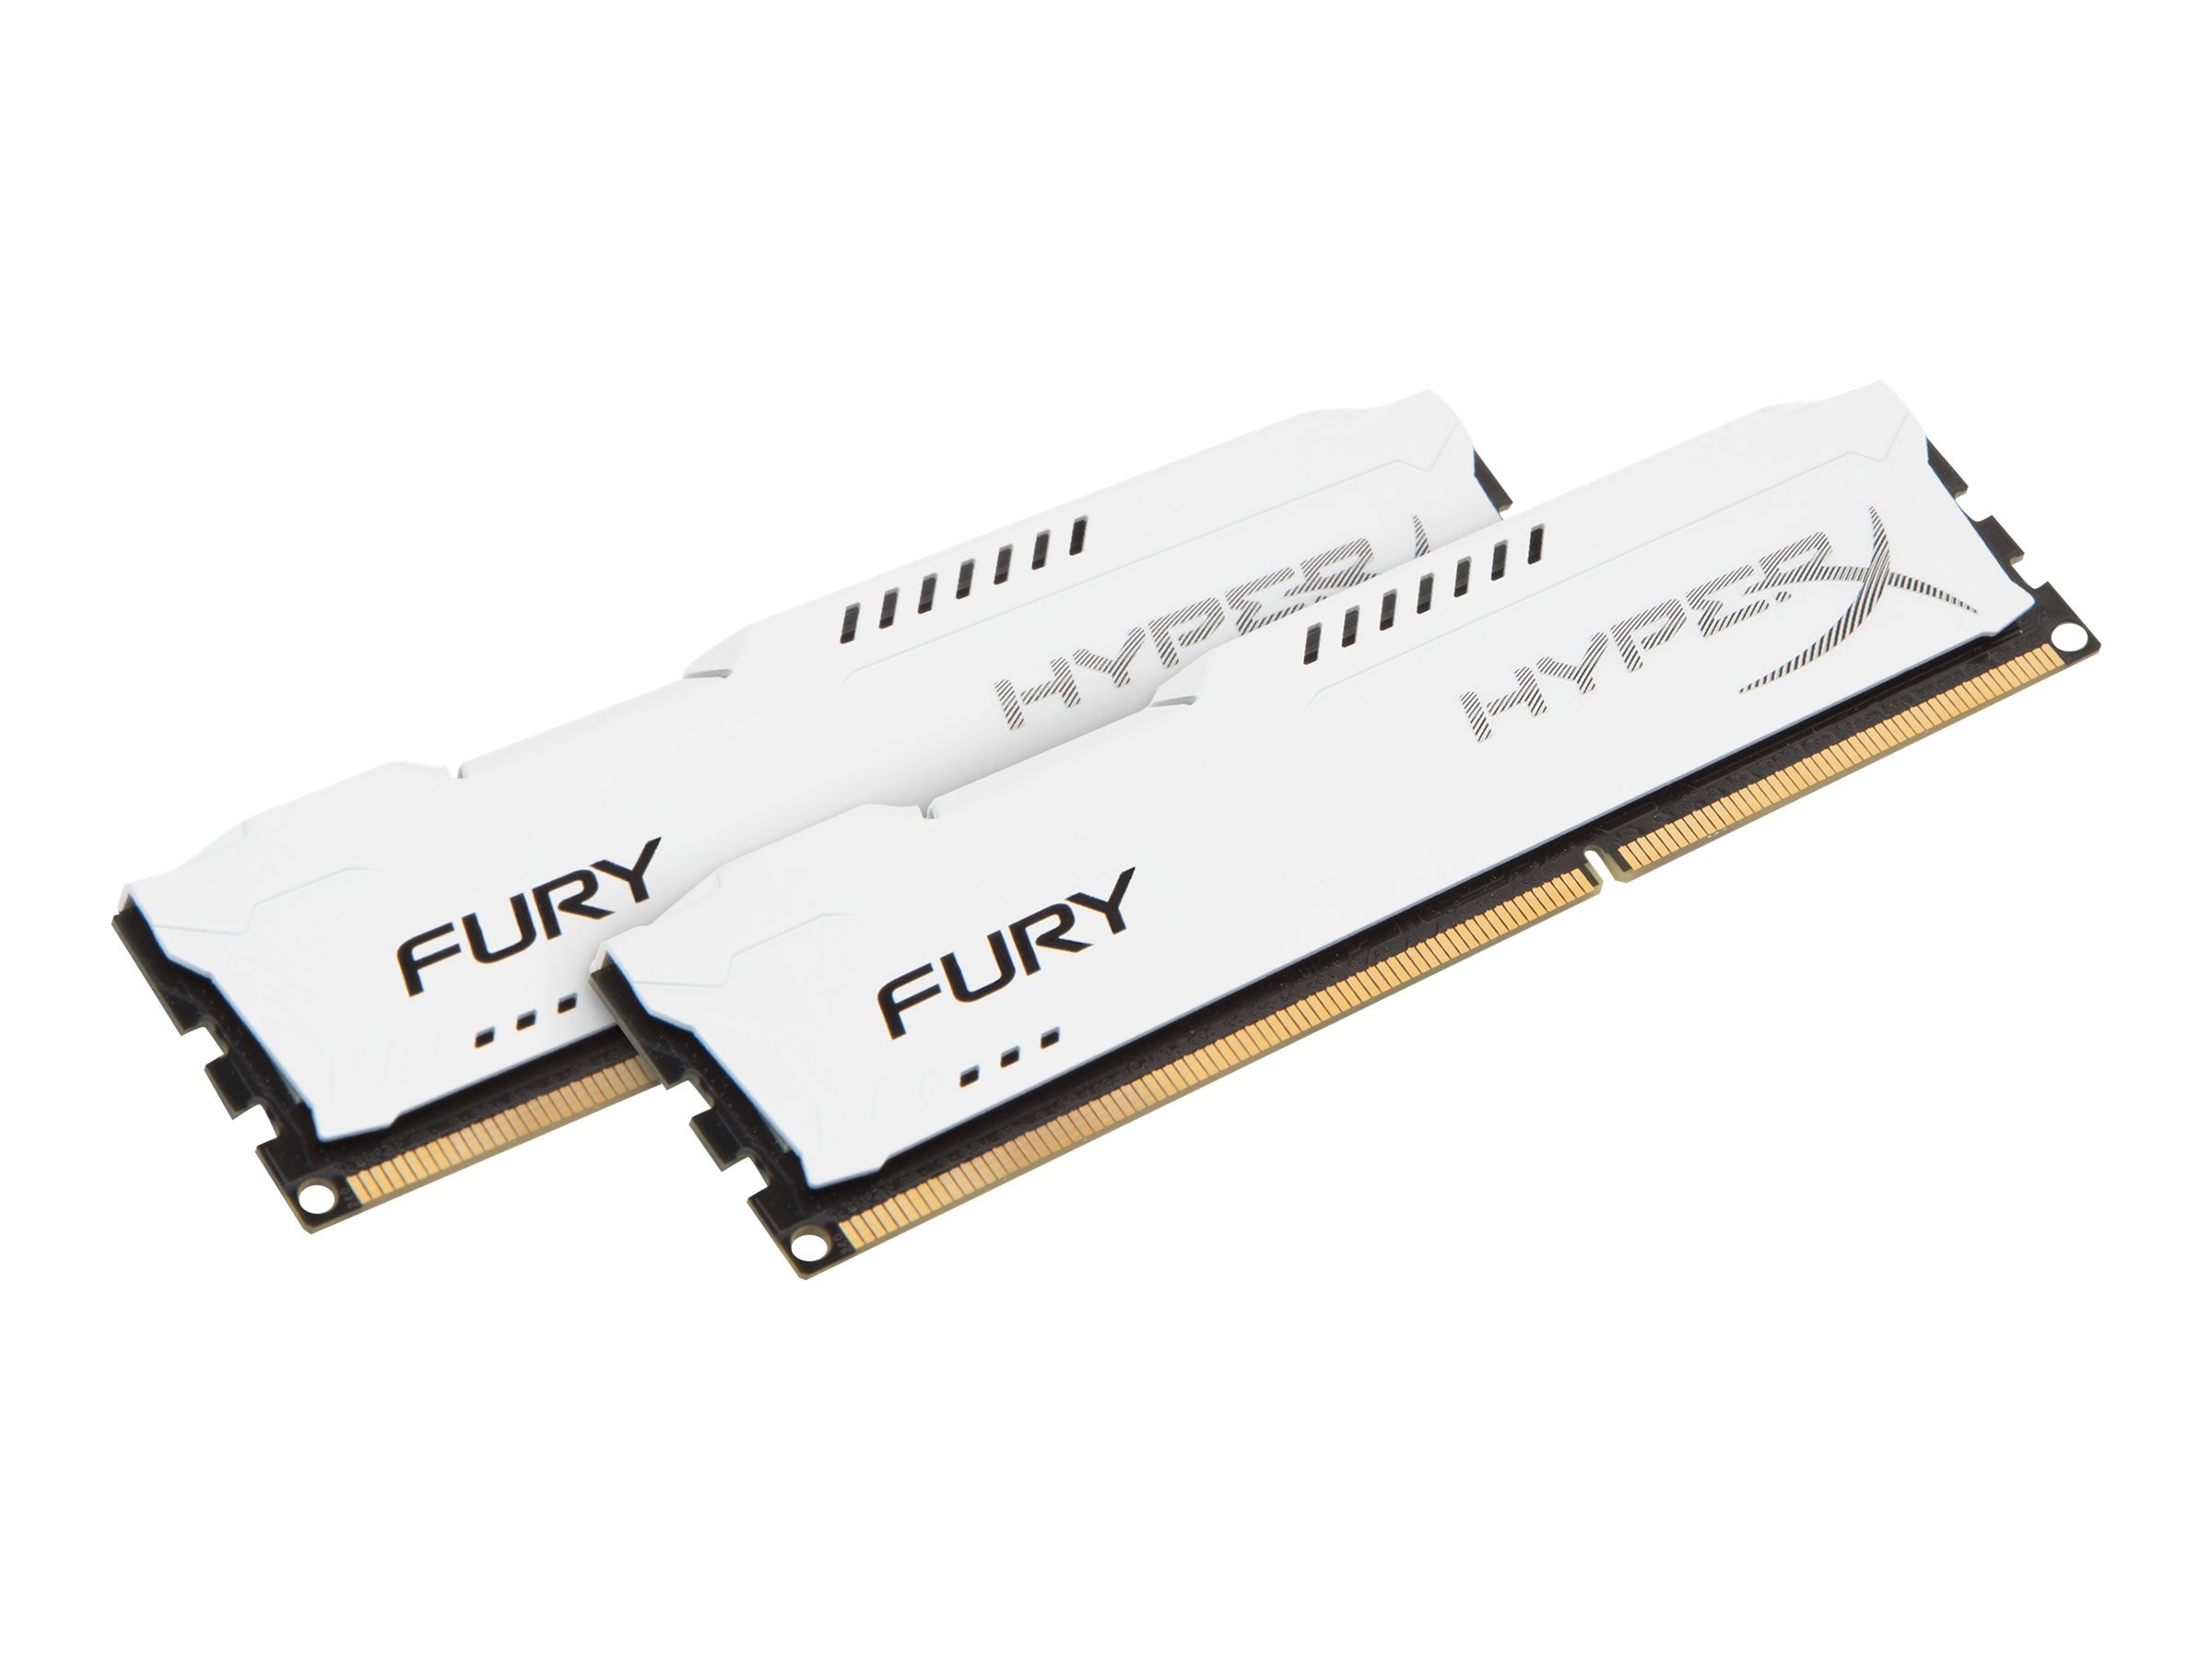 HyperX FURY - DDR3 - 8 GB: 2 x 4 GB - DIMM 240-PIN - 1866 MHz / PC3-14900 - CL10